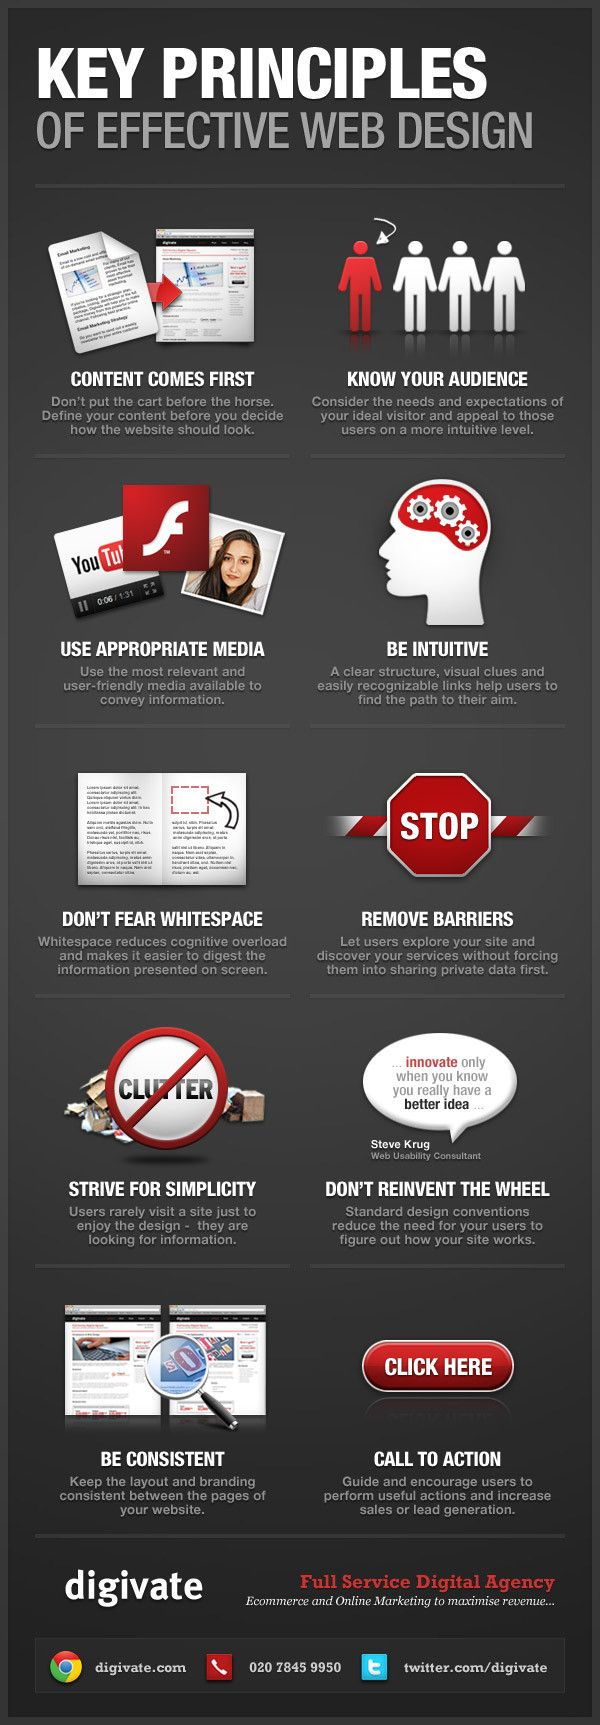 Key Principles Of Effective Web Design #infographic #web #webdesign #jhb